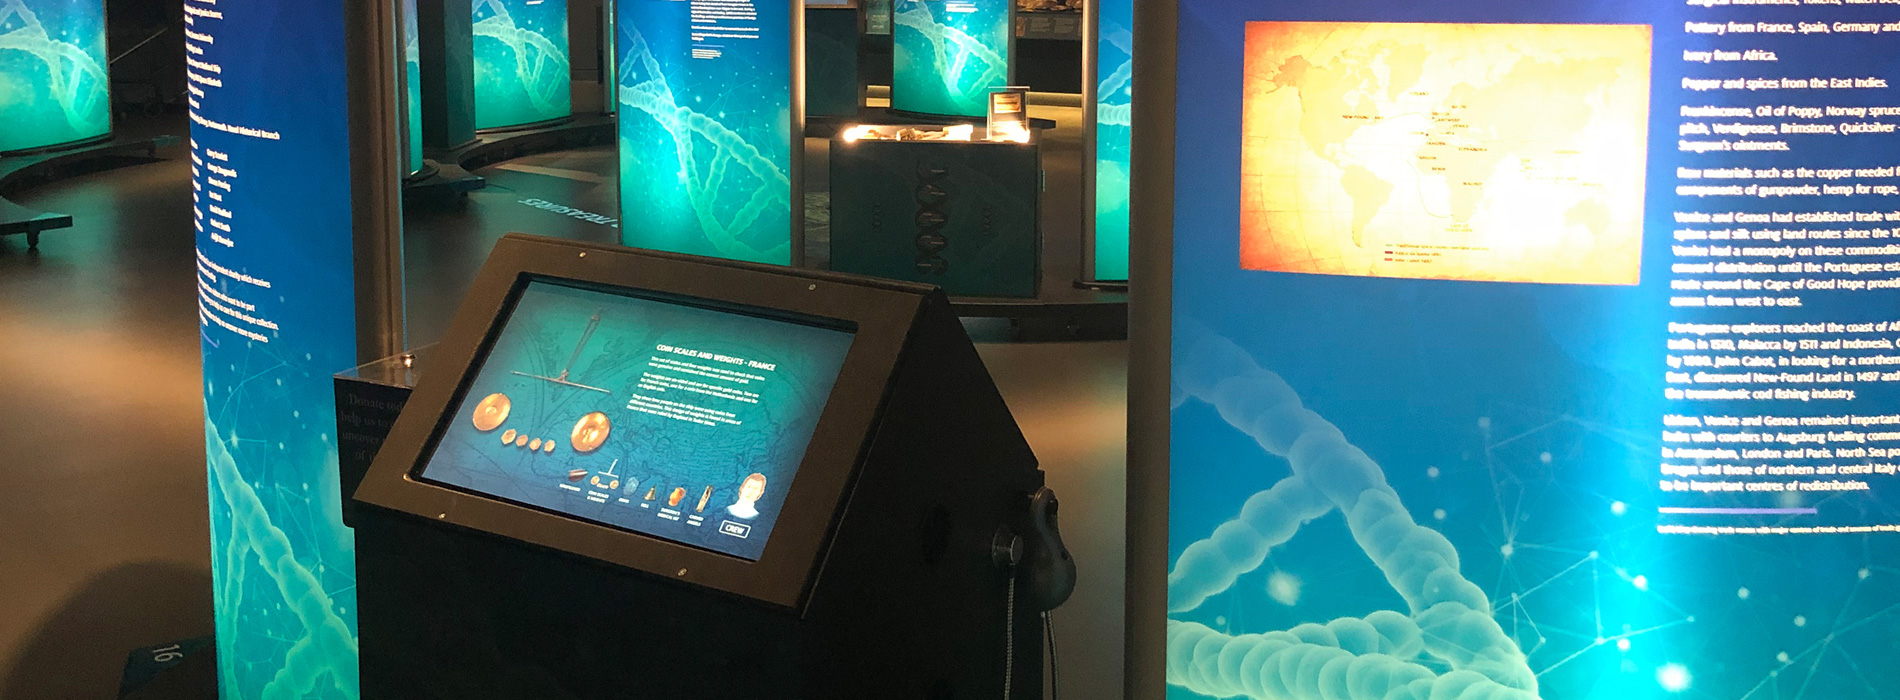 Mary Rose Museum Touch Screen